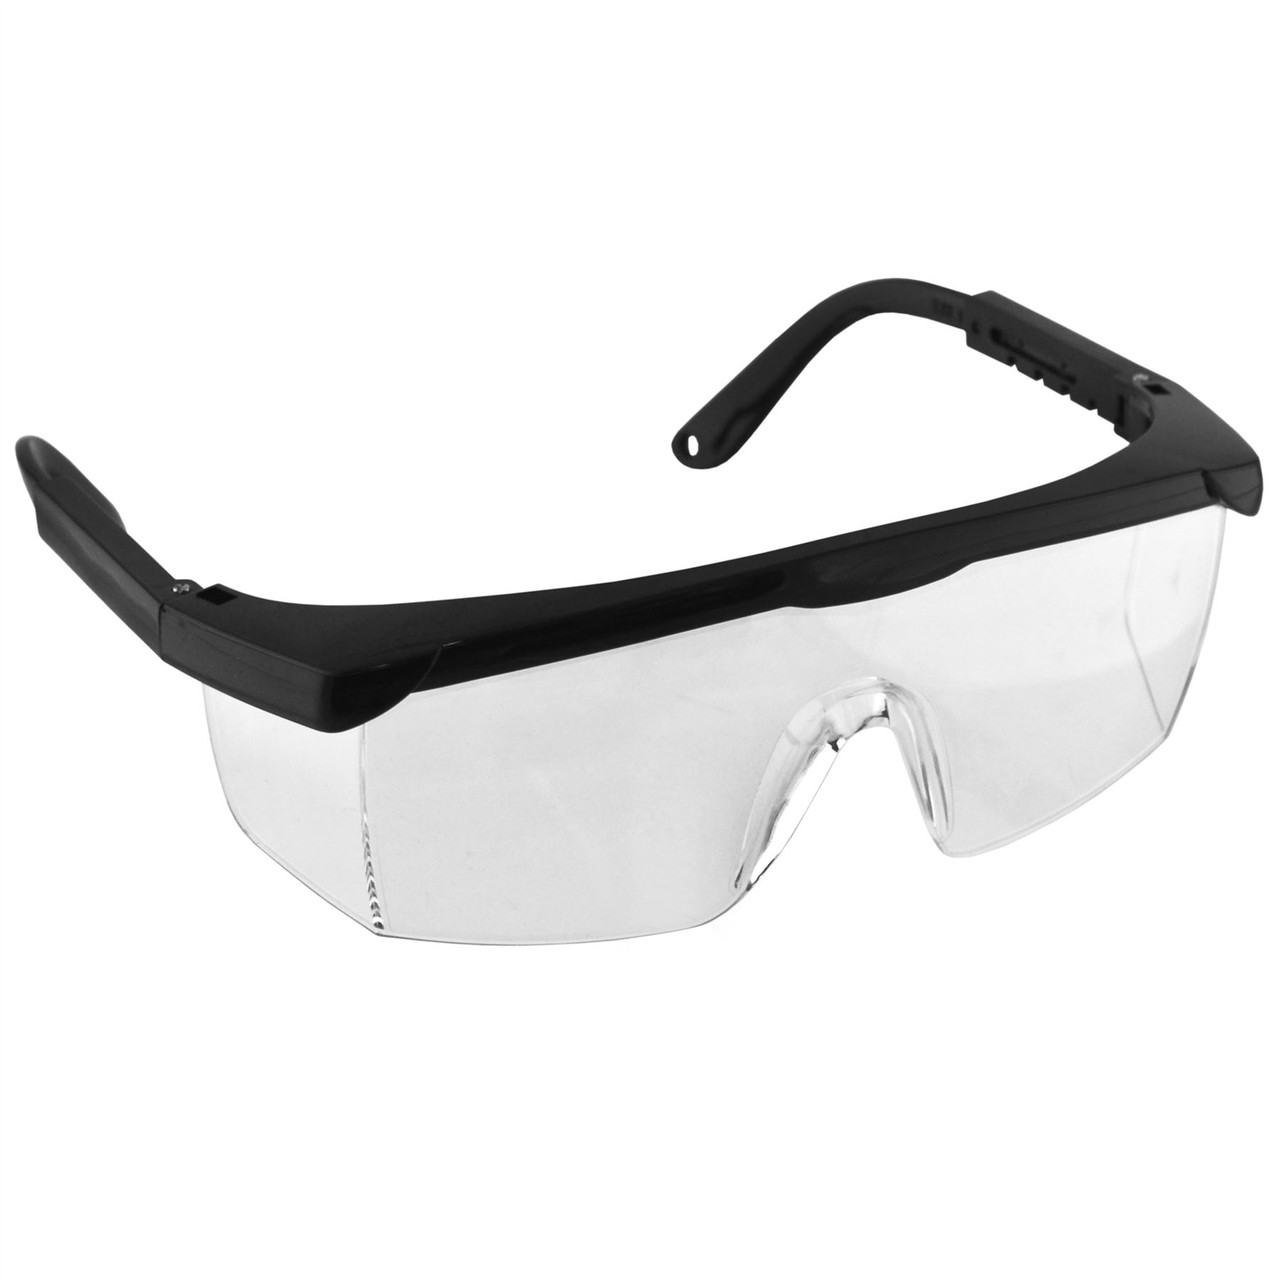 Goggles DIY Eye Protection Work Industrial TE202 Safety Glasses